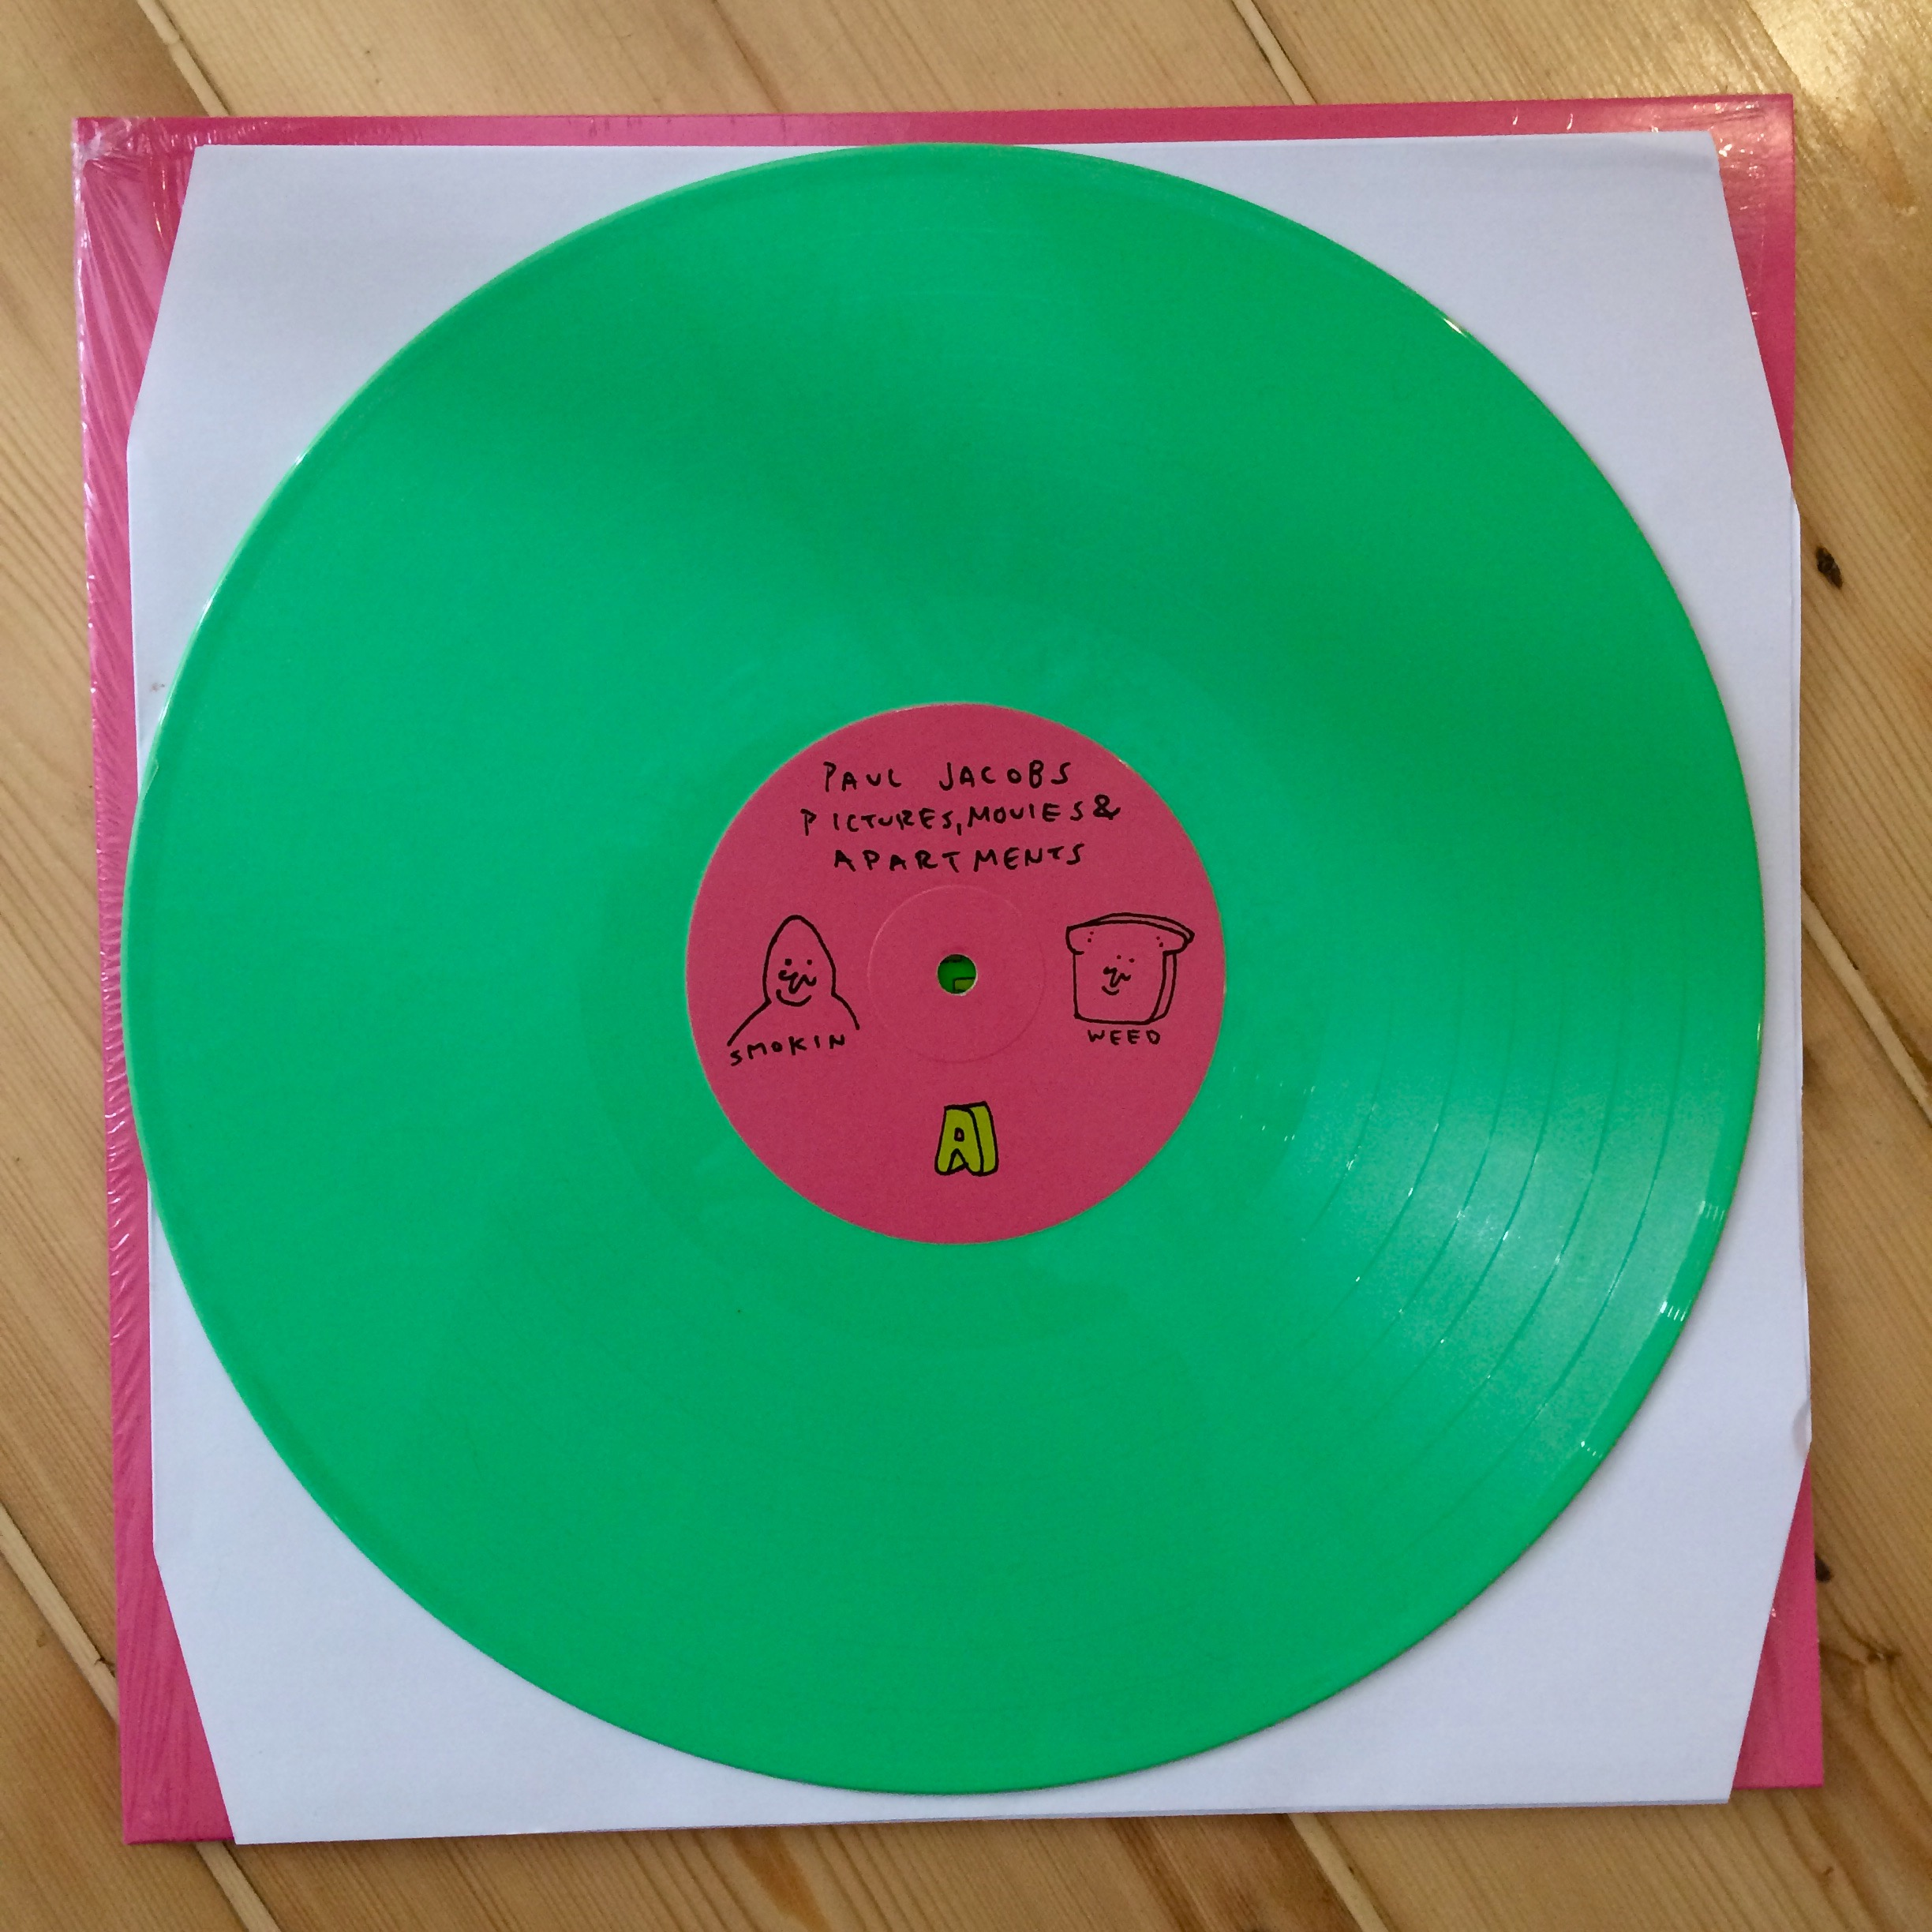 Paul Jacobs - Pictures, Movies And Apartments Green Vinyl